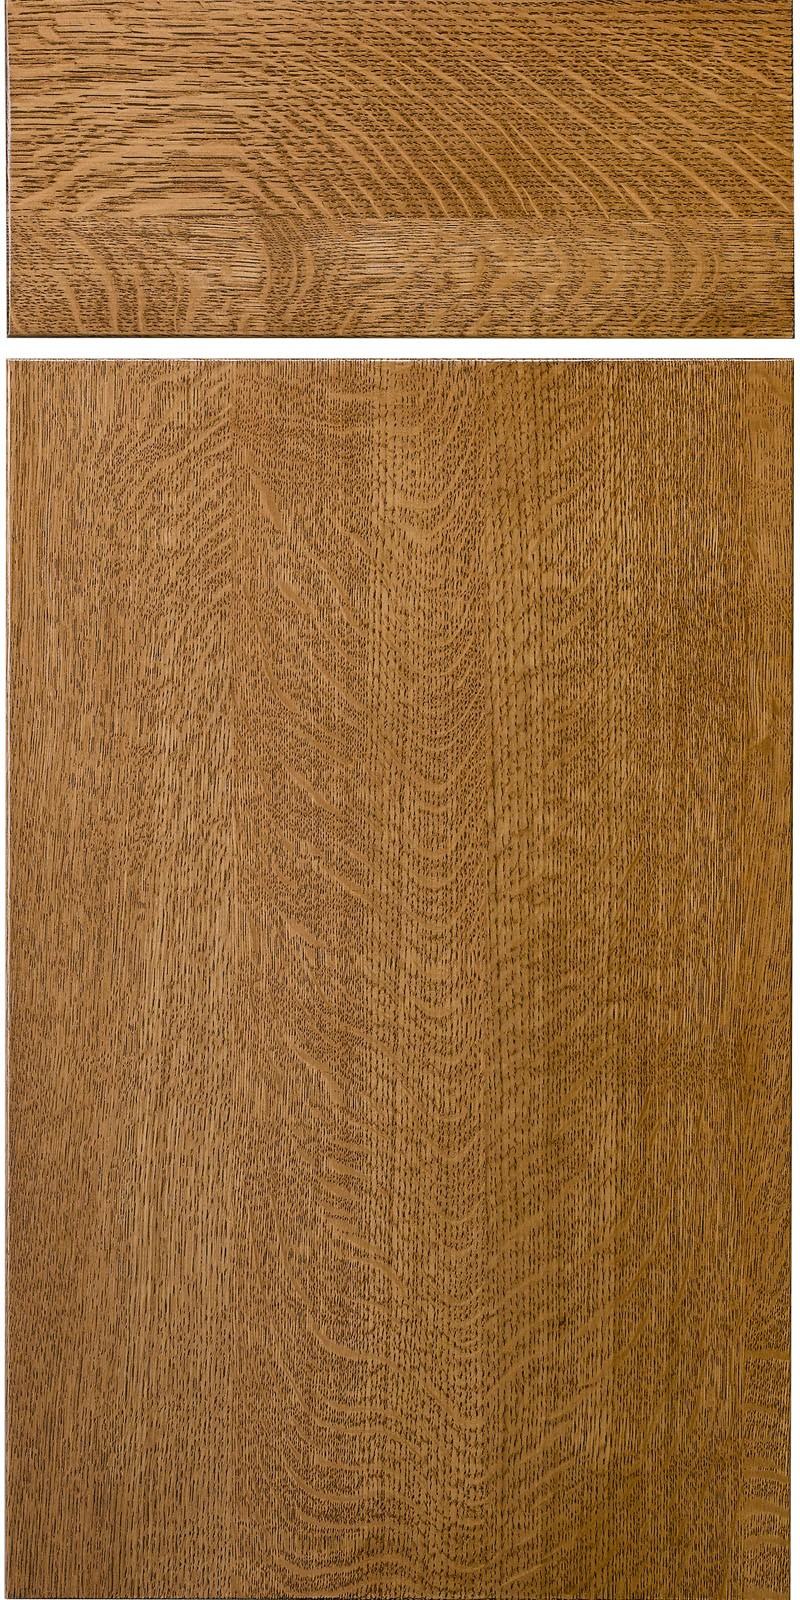 Slab Solid Wood Materials Cabinet Doors Drawer Fronts Products